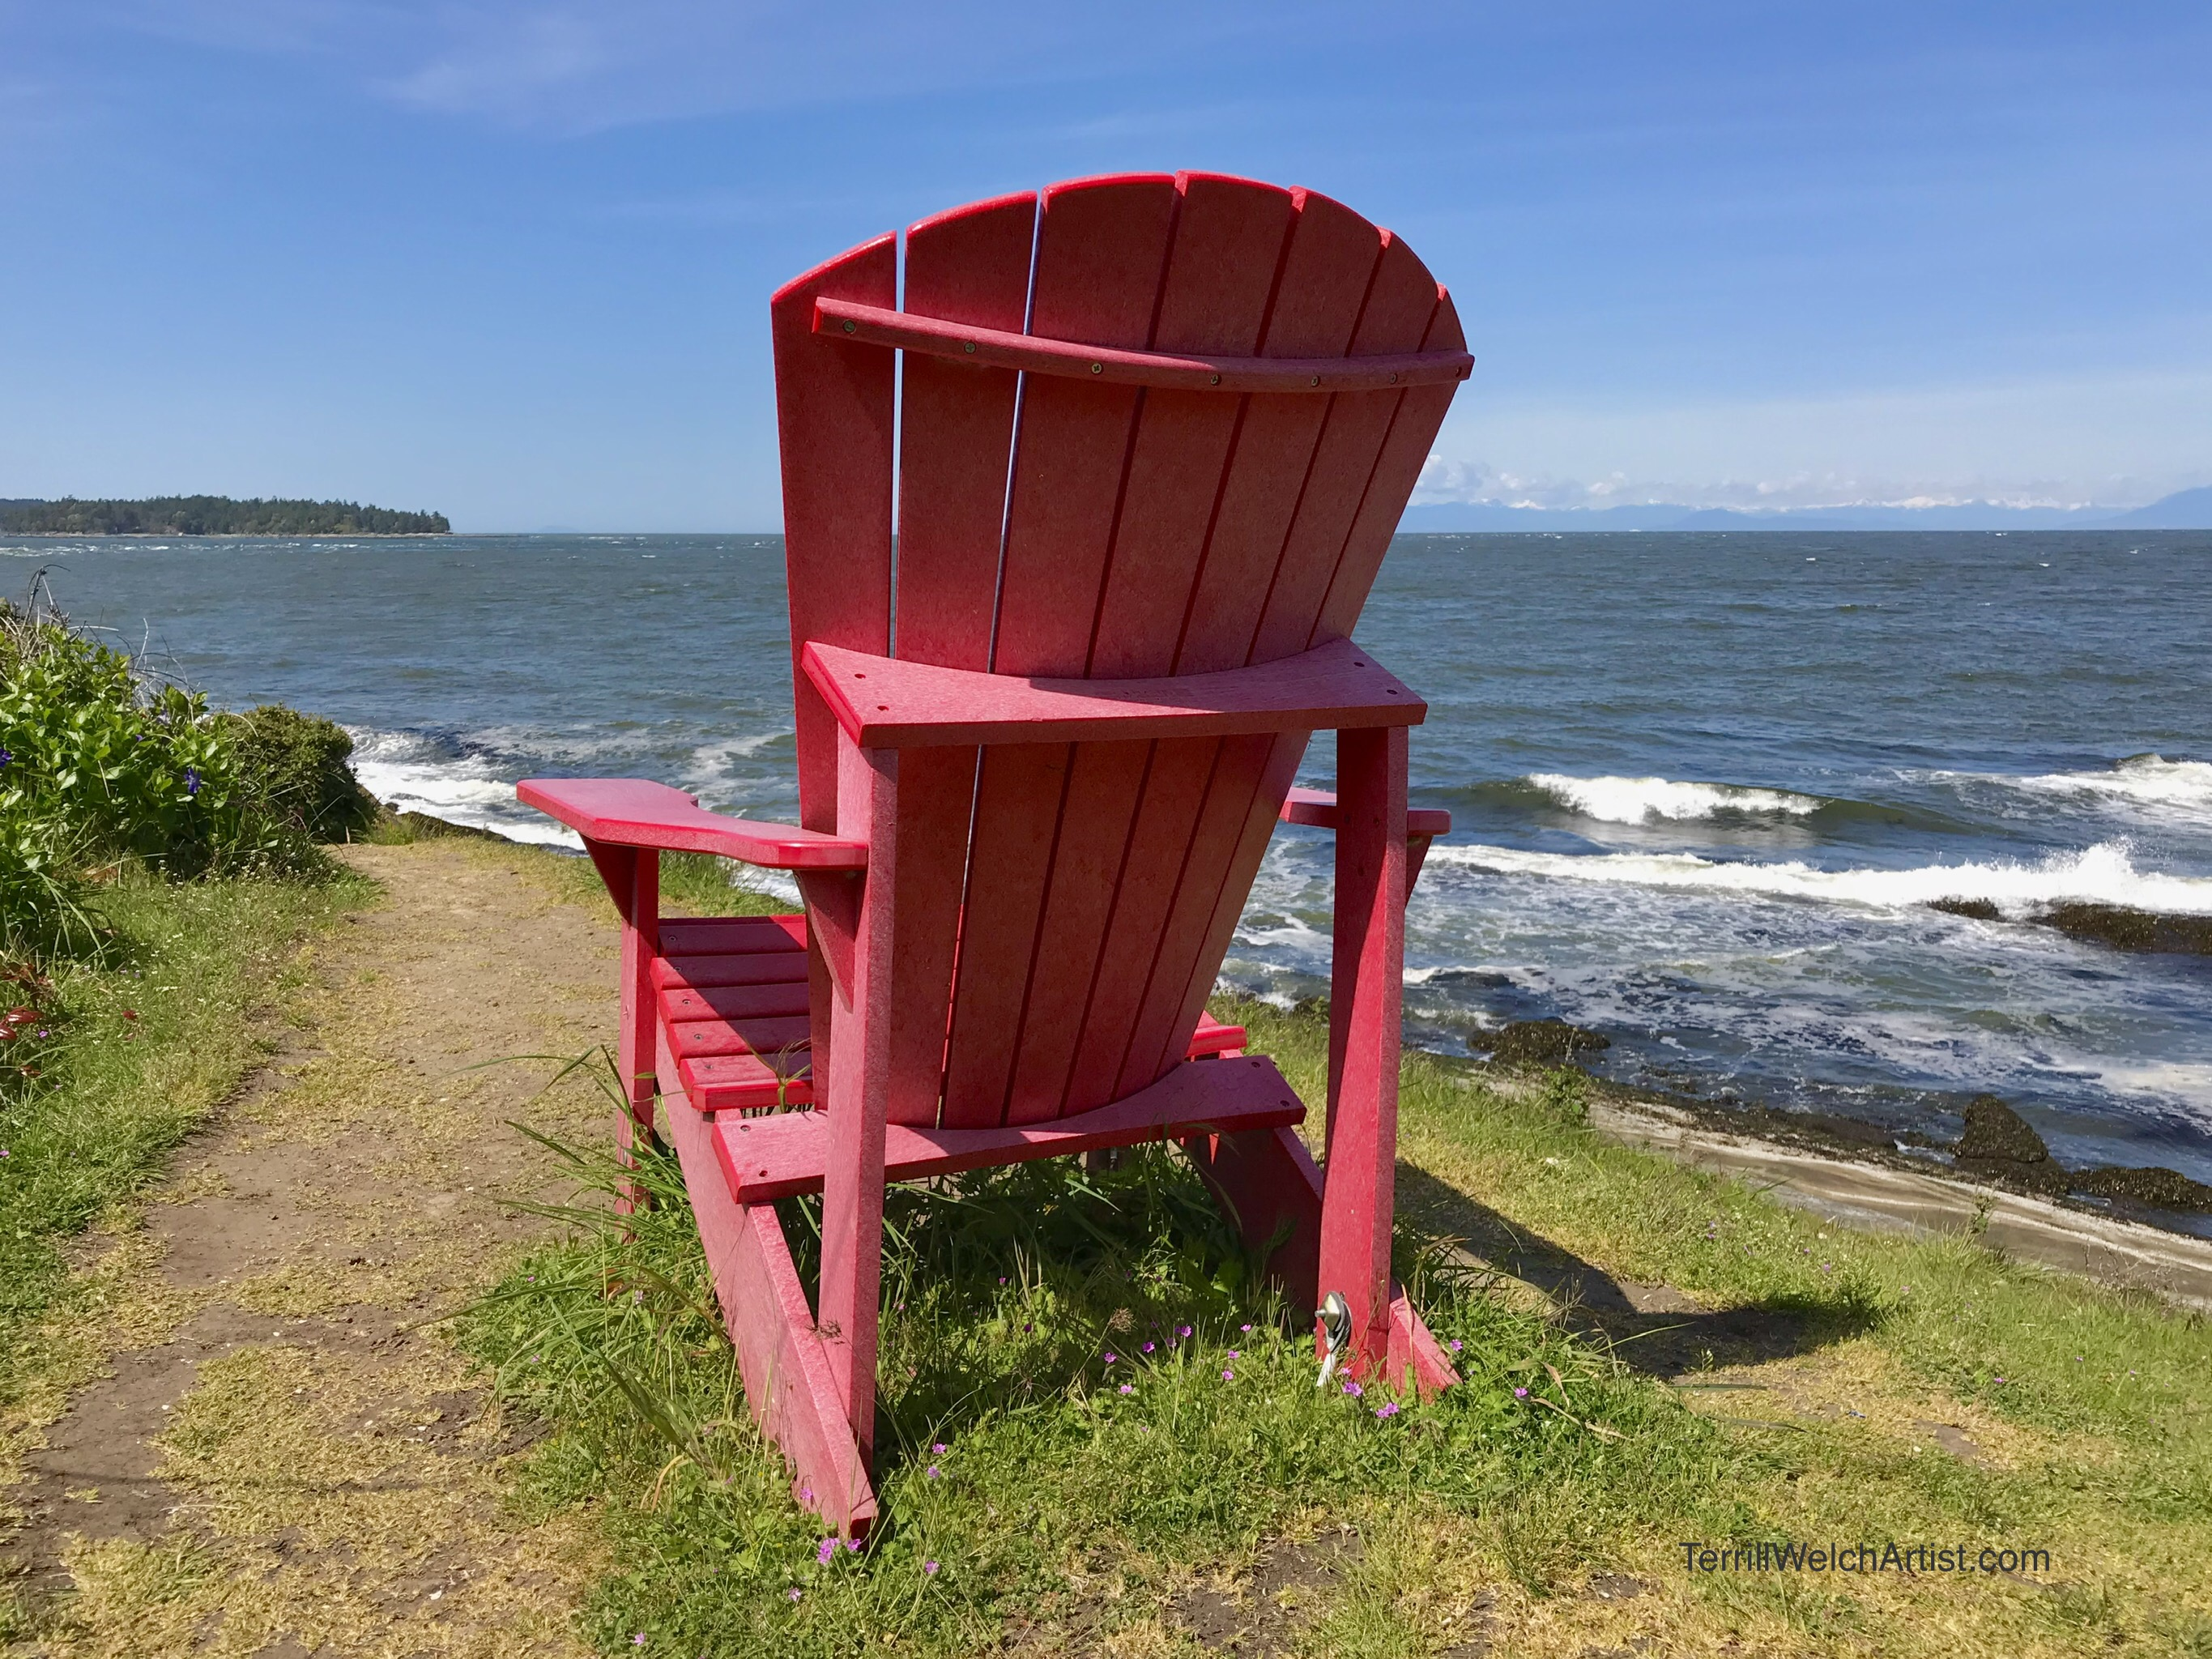 Red Chair over looking ocean.